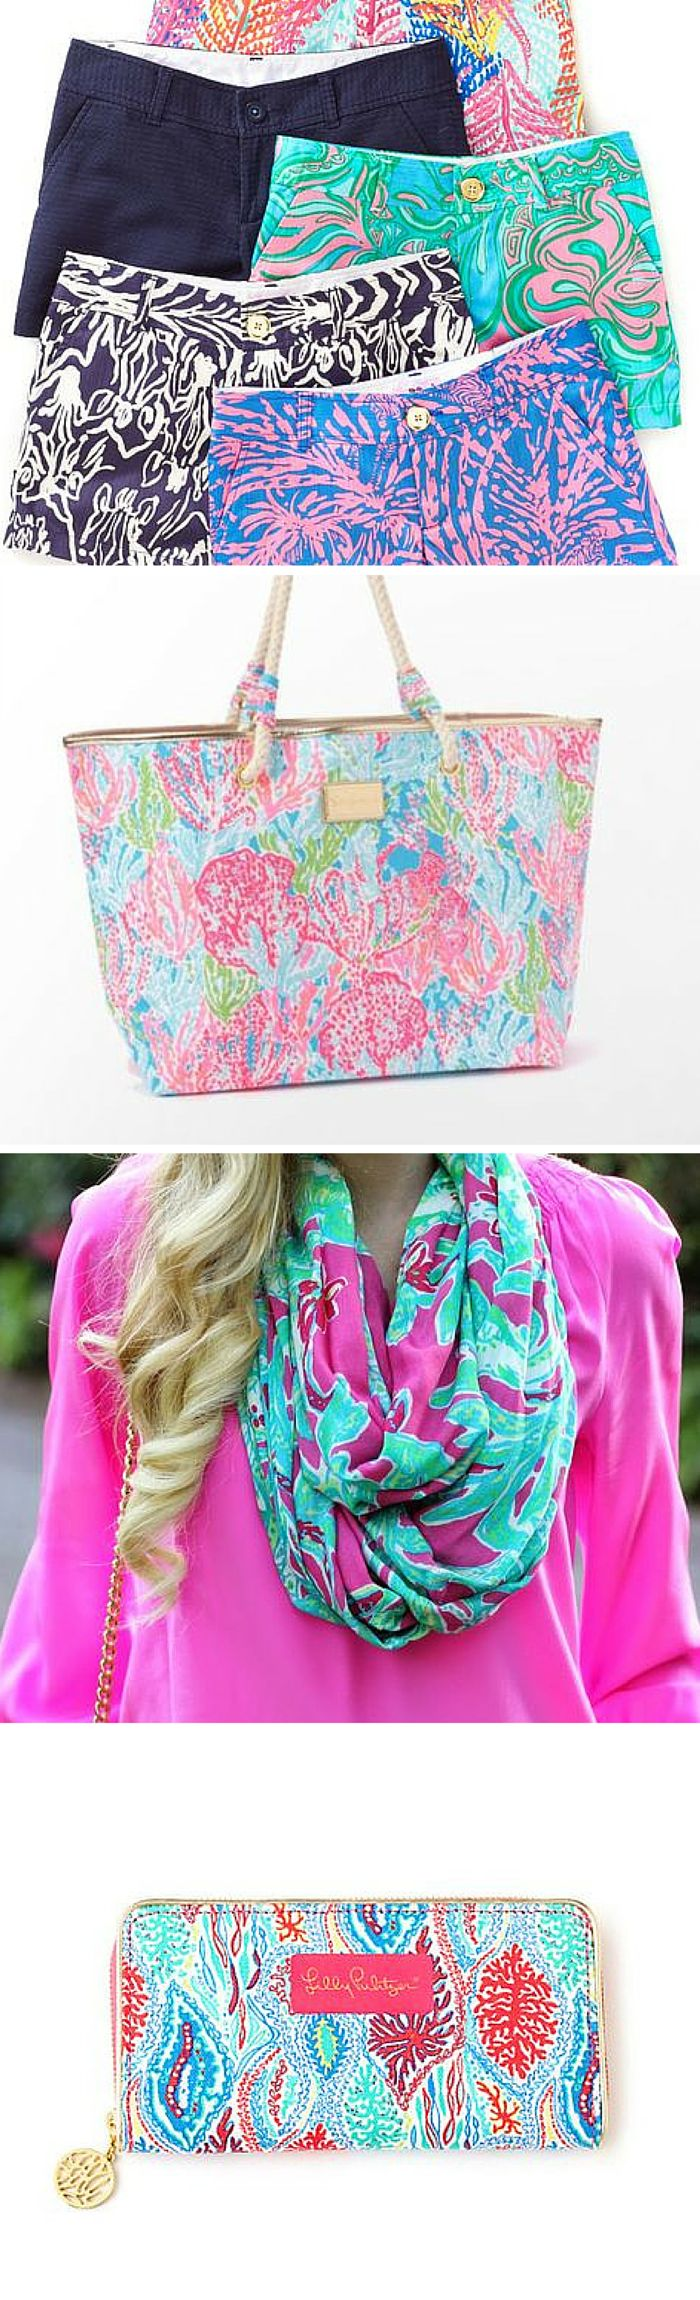 Sale Happening NOW! Buy Lilly Pulitzer up to 70% off! Click image to get free app now.